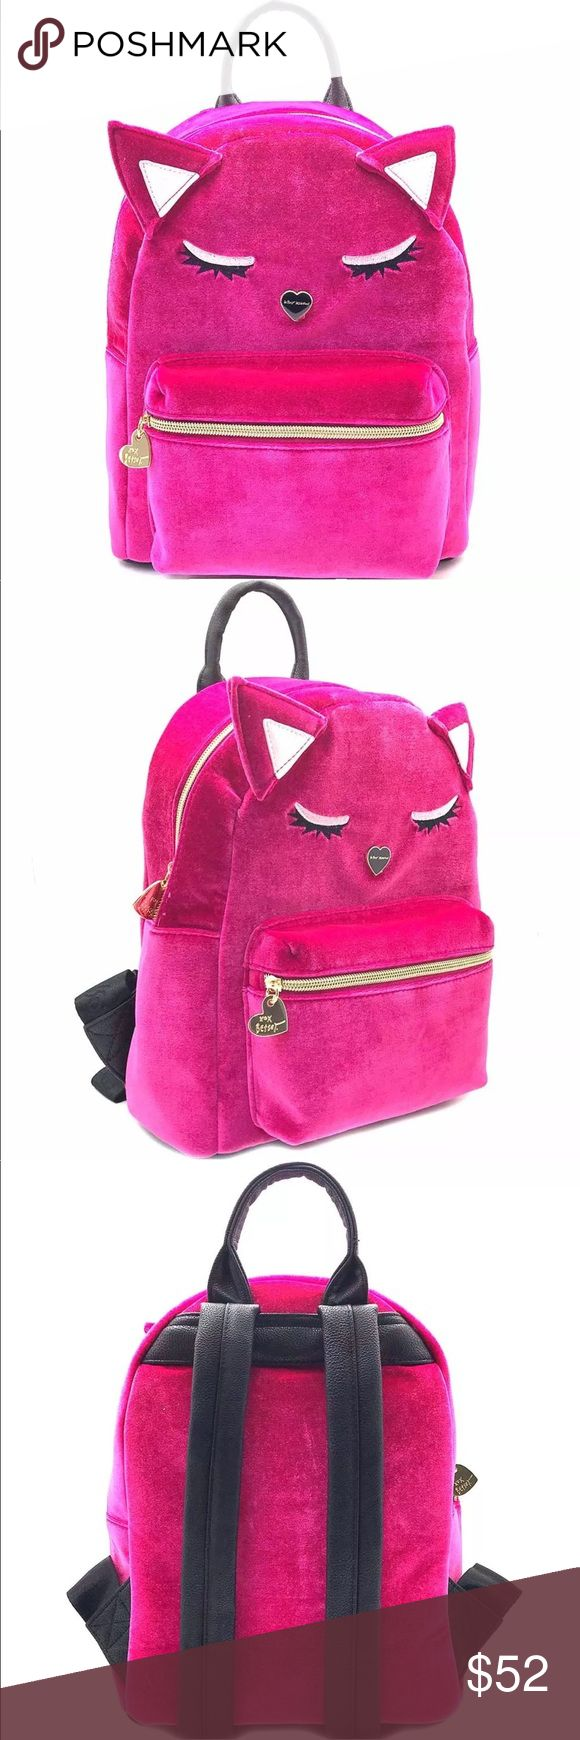 "Betsey Velvet Cat Backpack Brand new with tag. Super cute Pink Cat in velvet material. Very spacious for boxes and a ""15 MacBook. PRICE FIRM! NO TRADES Betsey Johnson Bags Backpacks"